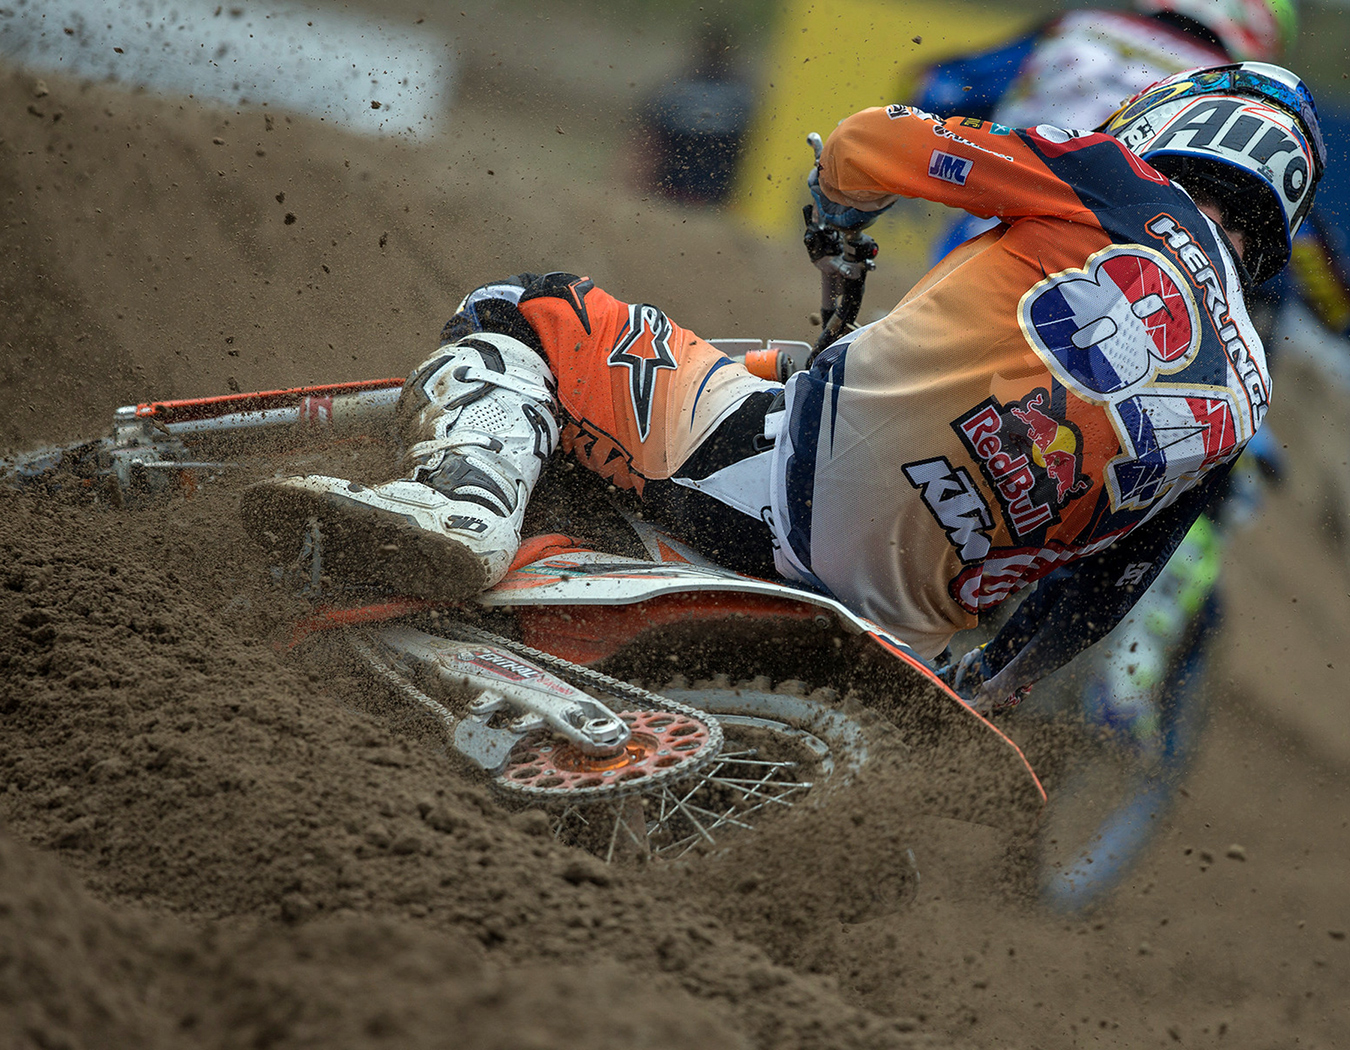 Jeffrey Herlings of the Red Bull KTM team :: photo KTM / R Archer